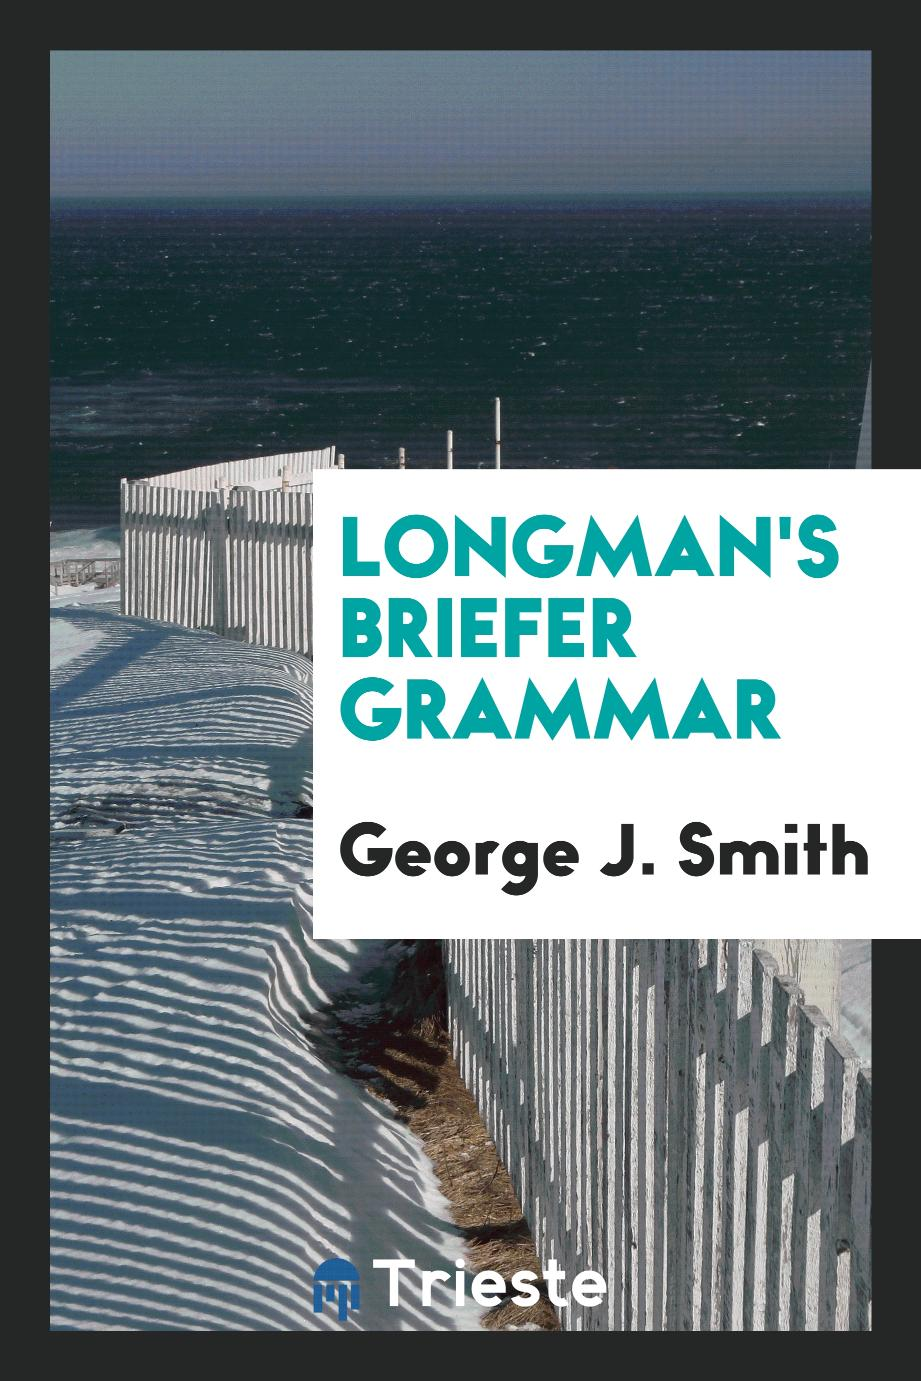 George J. Smith - Longman's Briefer Grammar